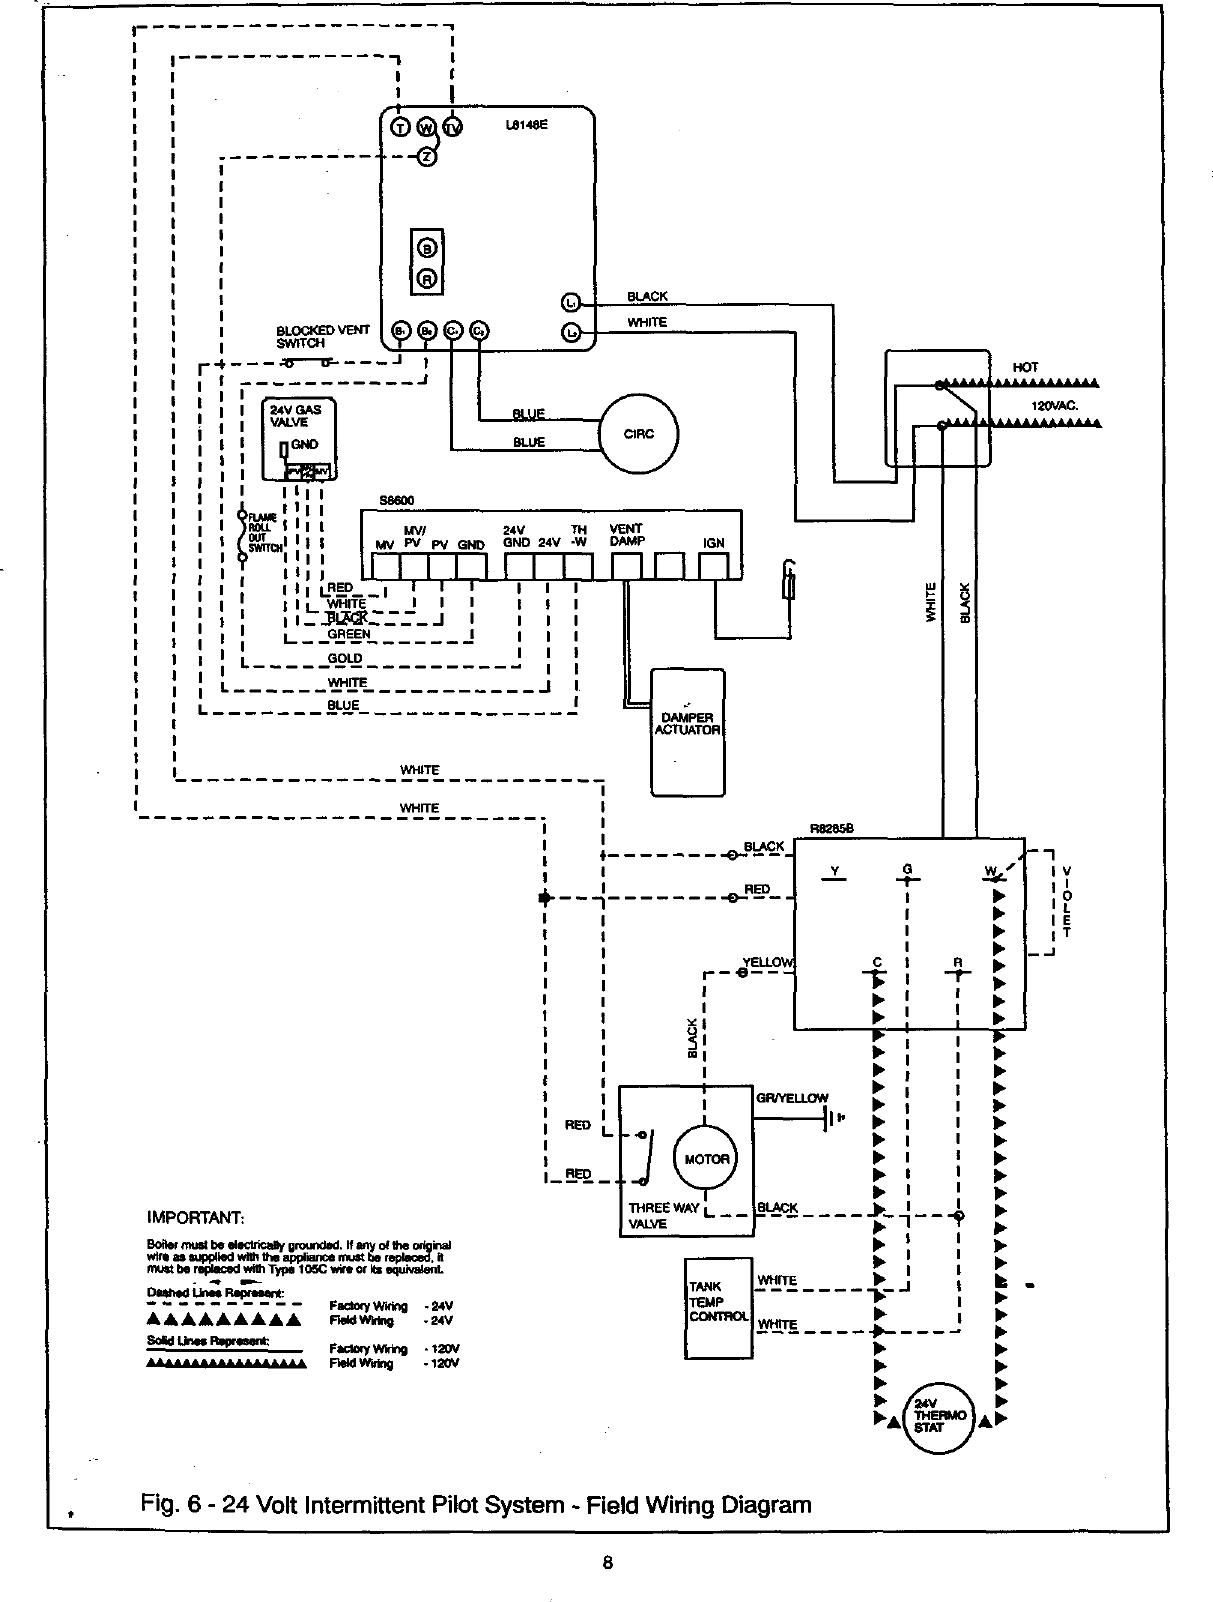 Vaillant Boiler Manual 98110066 System Wiring Diagram Page 8 Of 12